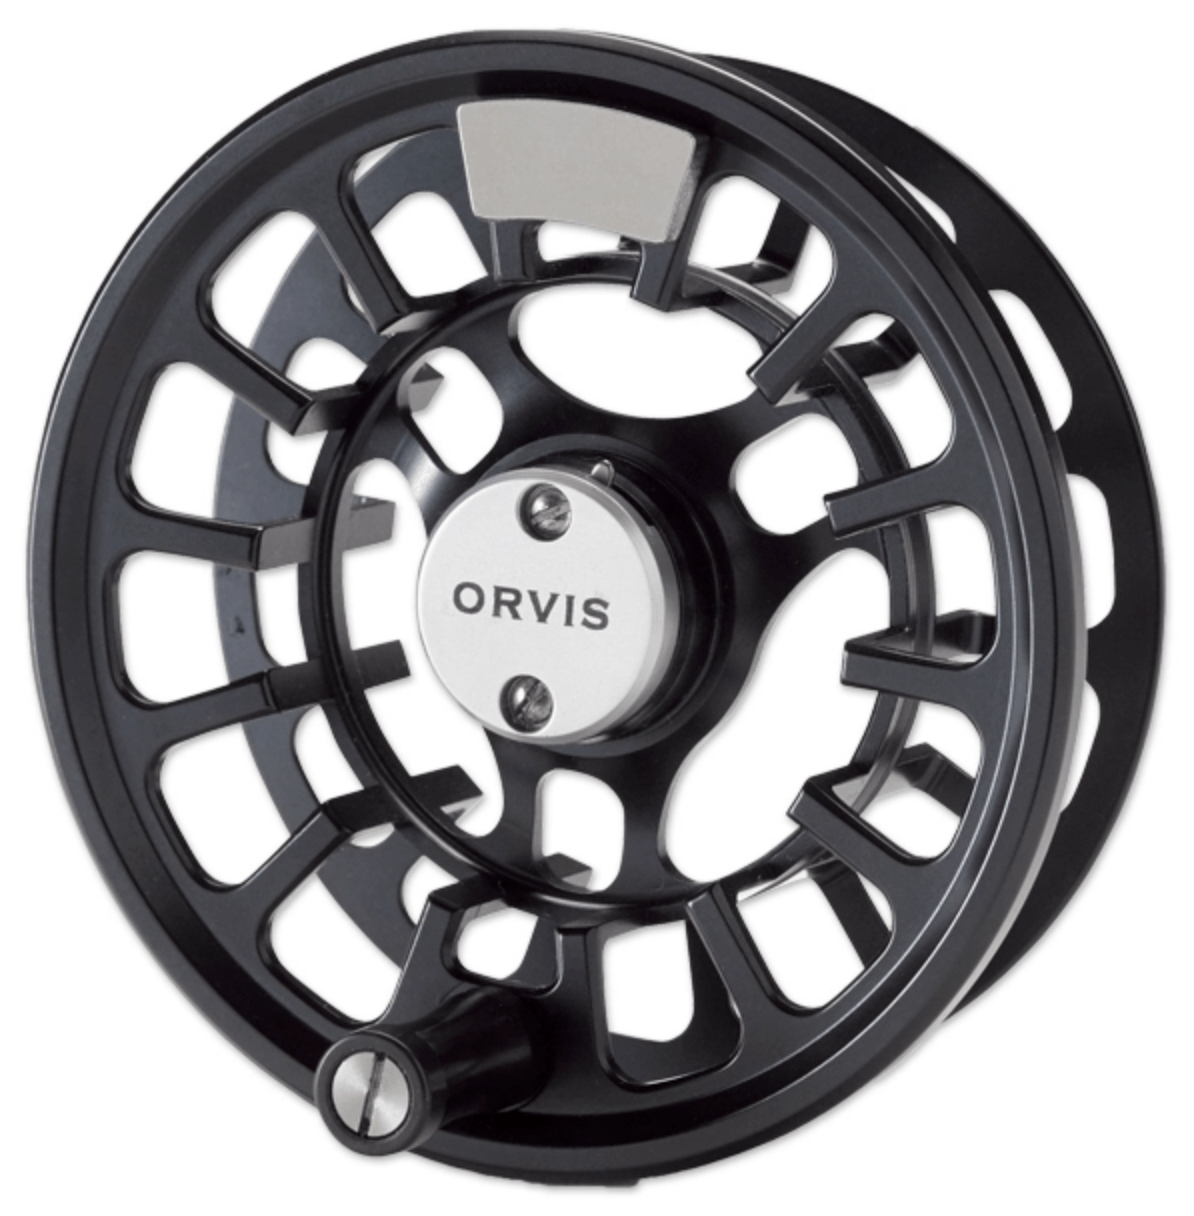 Orvis Hydros Fly Reel Spool